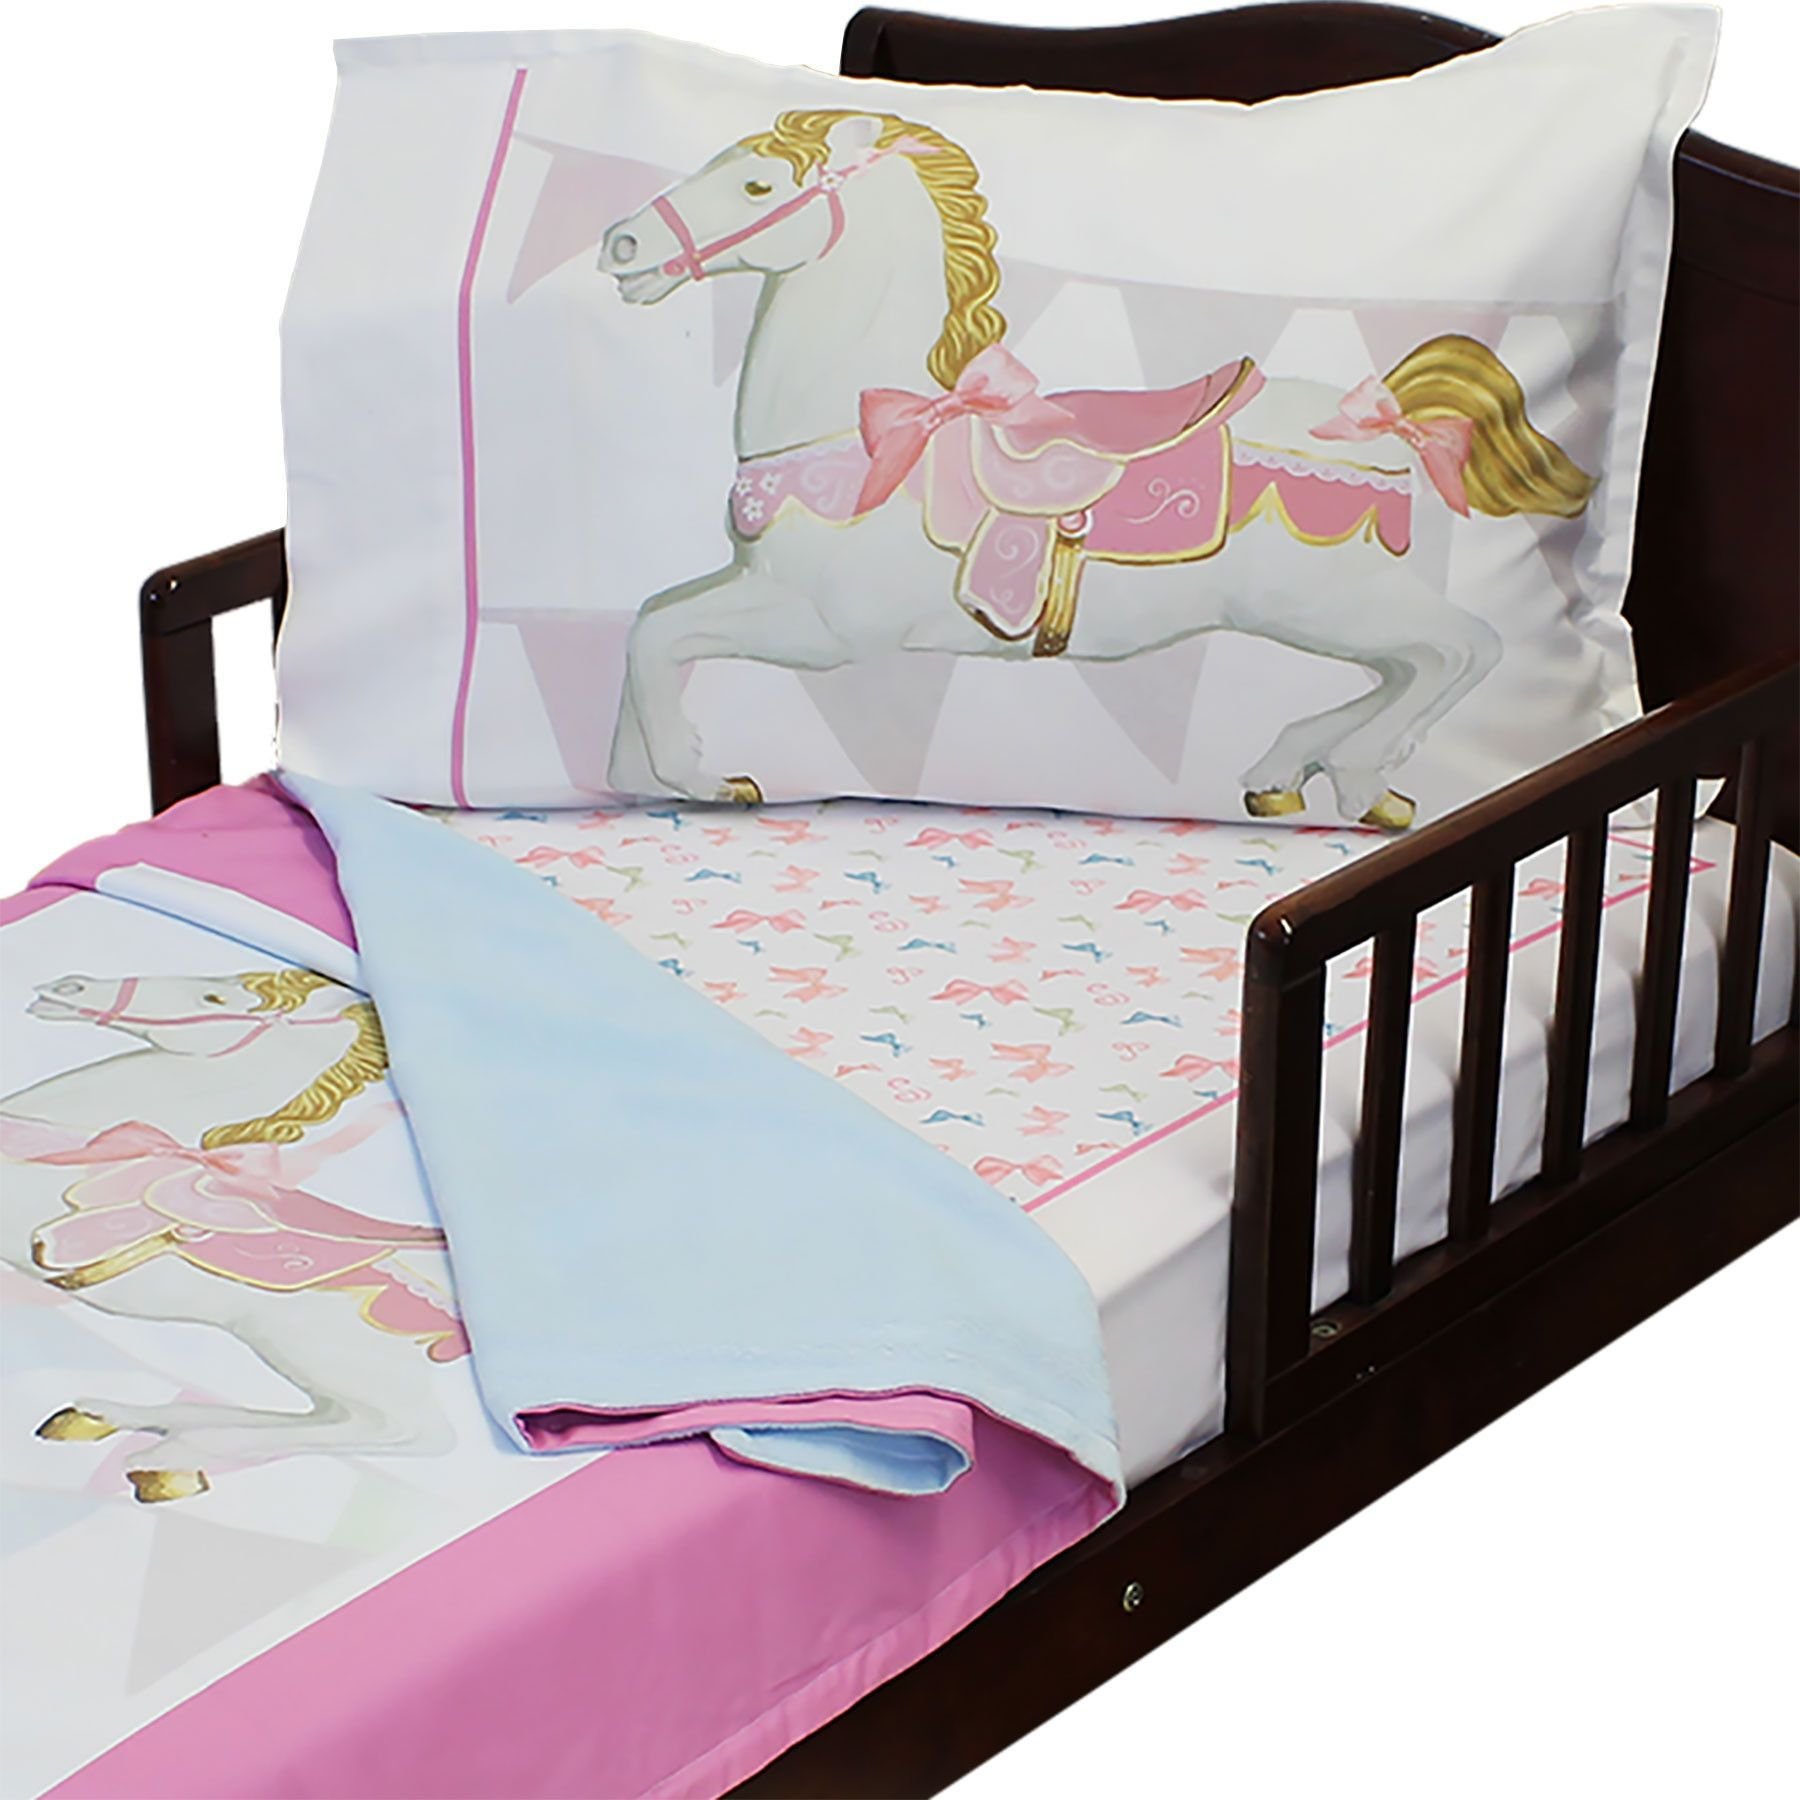 house beautiful toddler sets girl images set design of thebutchercover bed decorating inspirational bedding ideas girls home